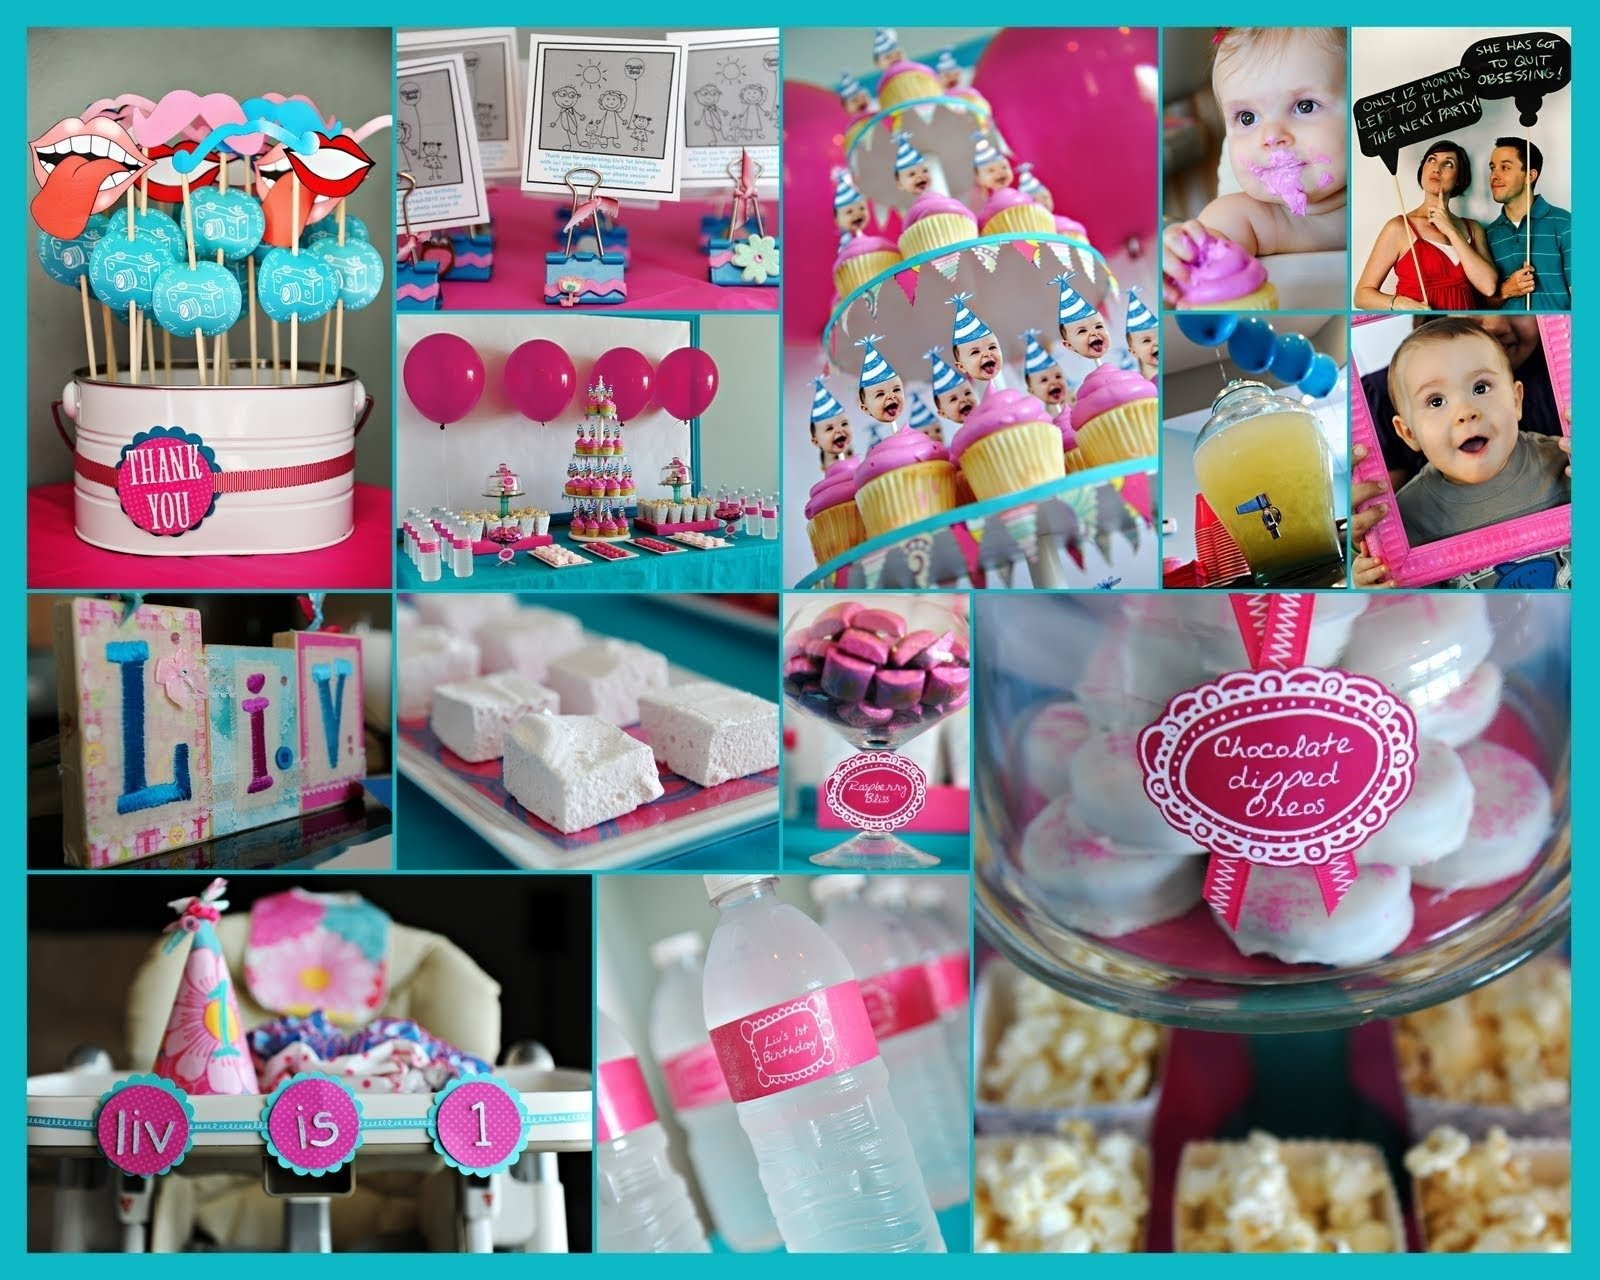 10 Lovely 1 Year Birthday Party Ideas first birthday party ideas 1st birthday party ideas kids 25 2020